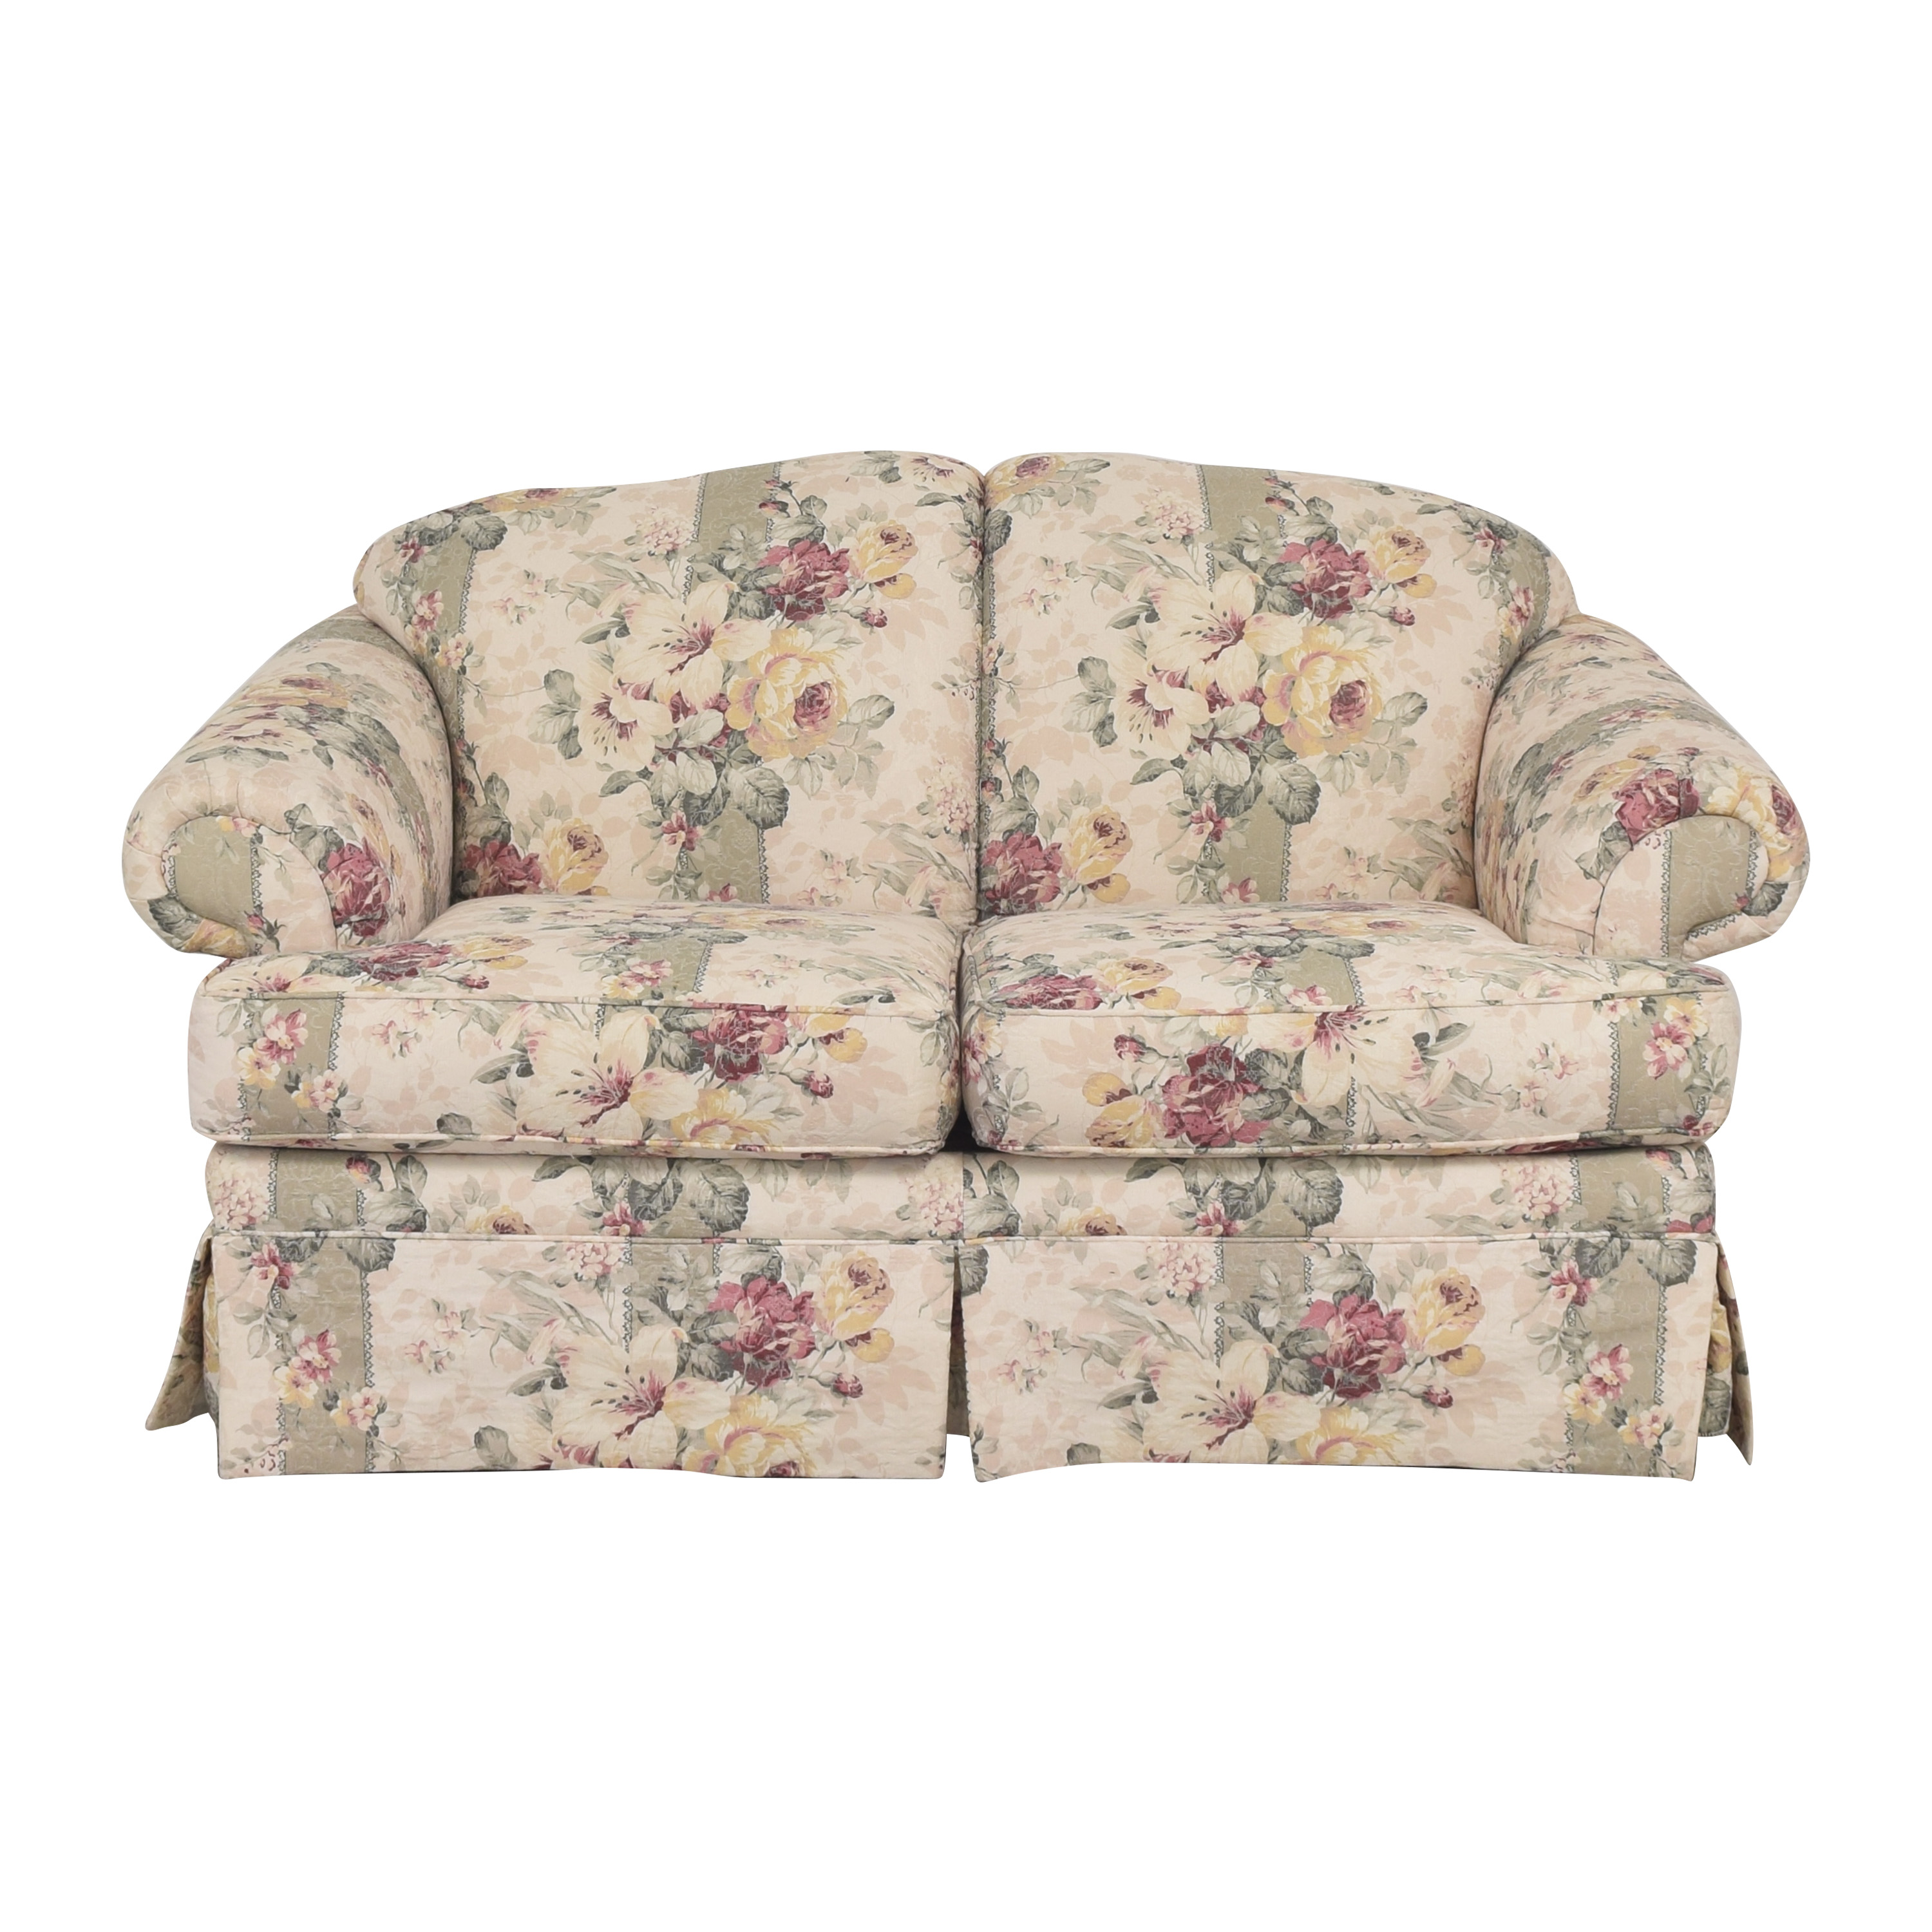 Rowe Furniture Rowe Furniture Floral Roll Arm Loveseat